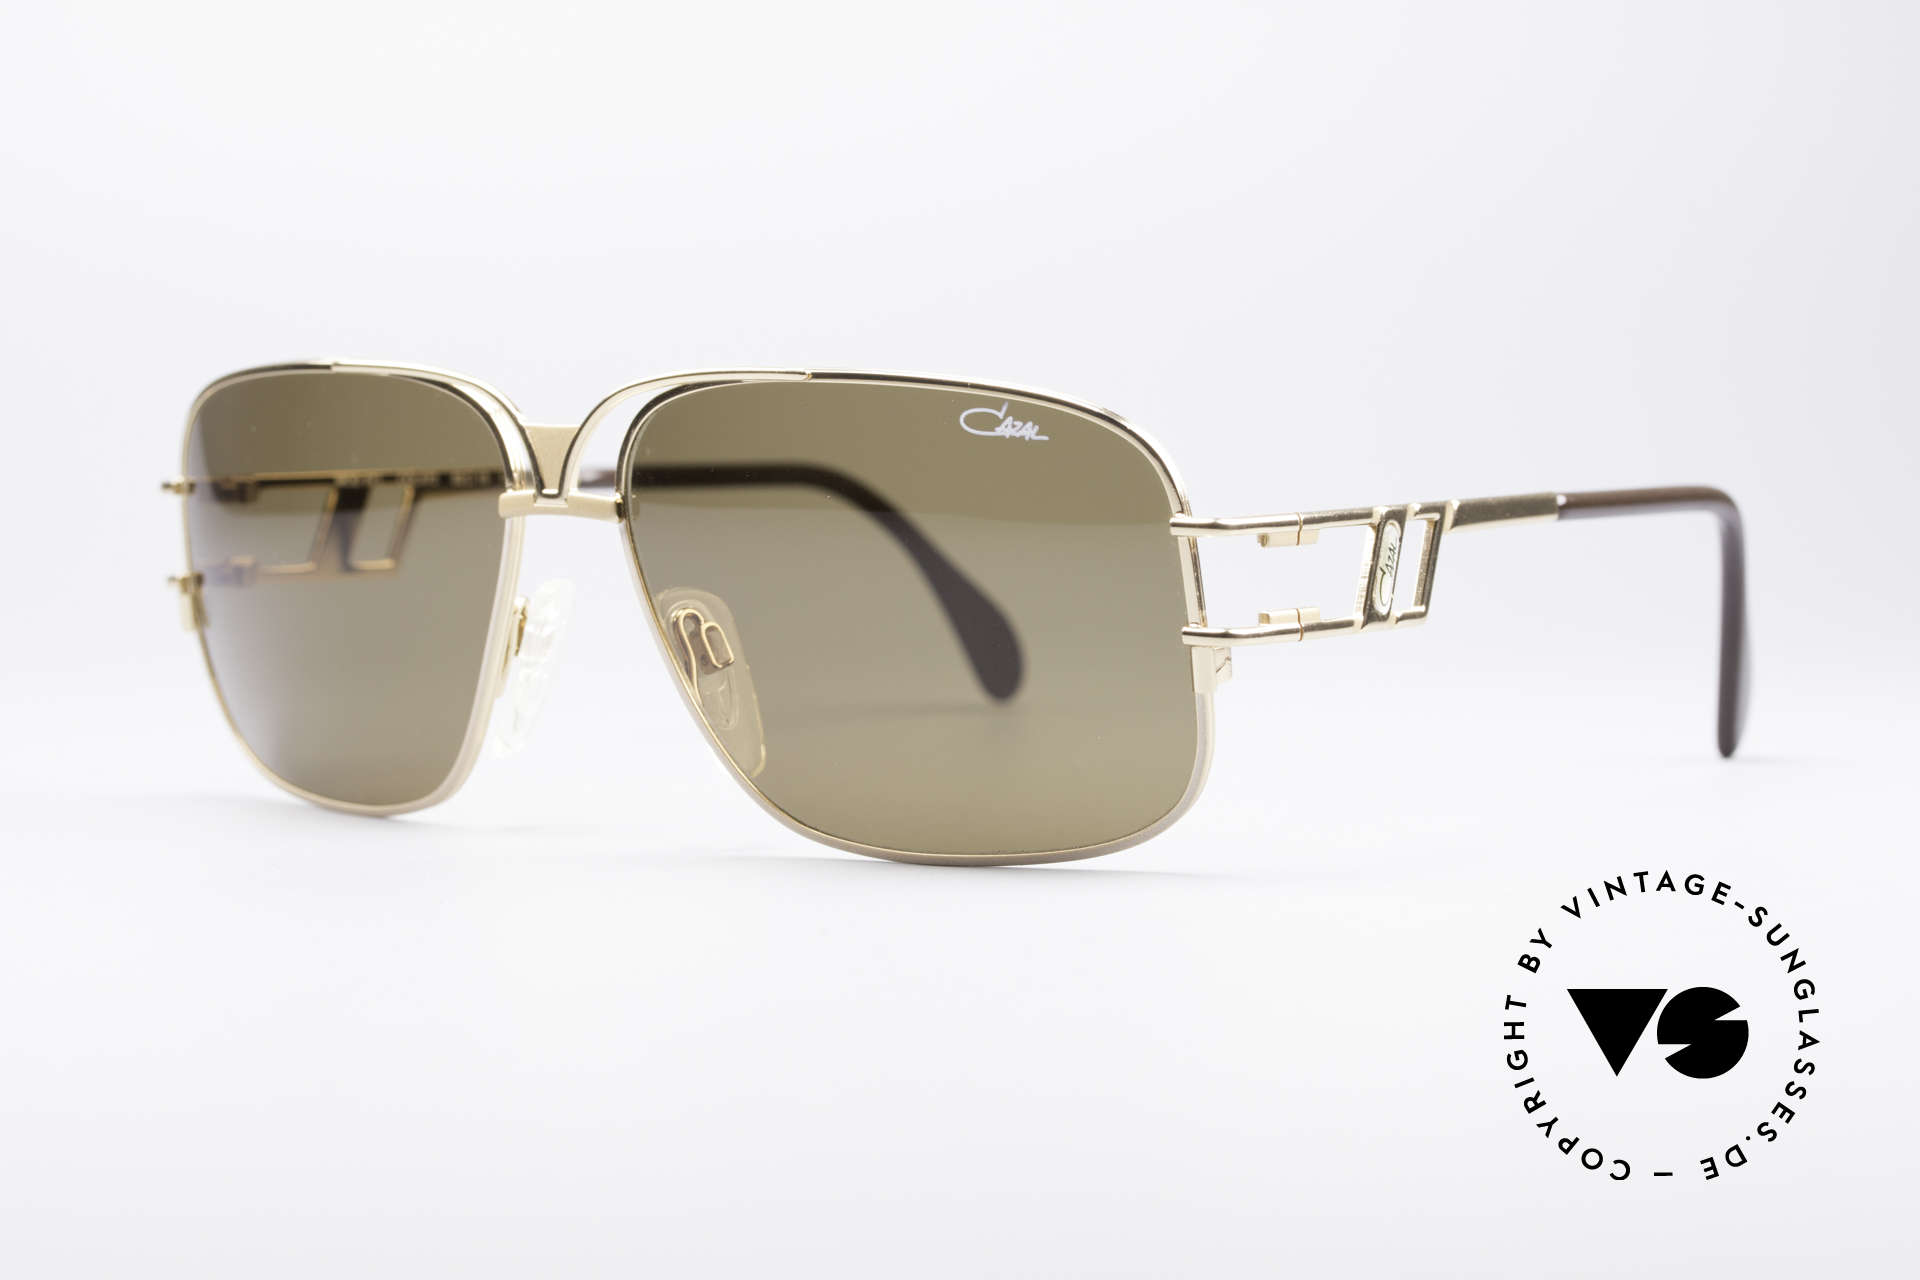 Cazal 971 Ultra Rare Designer Shades, very interesting frame design (something really different), Made for Men